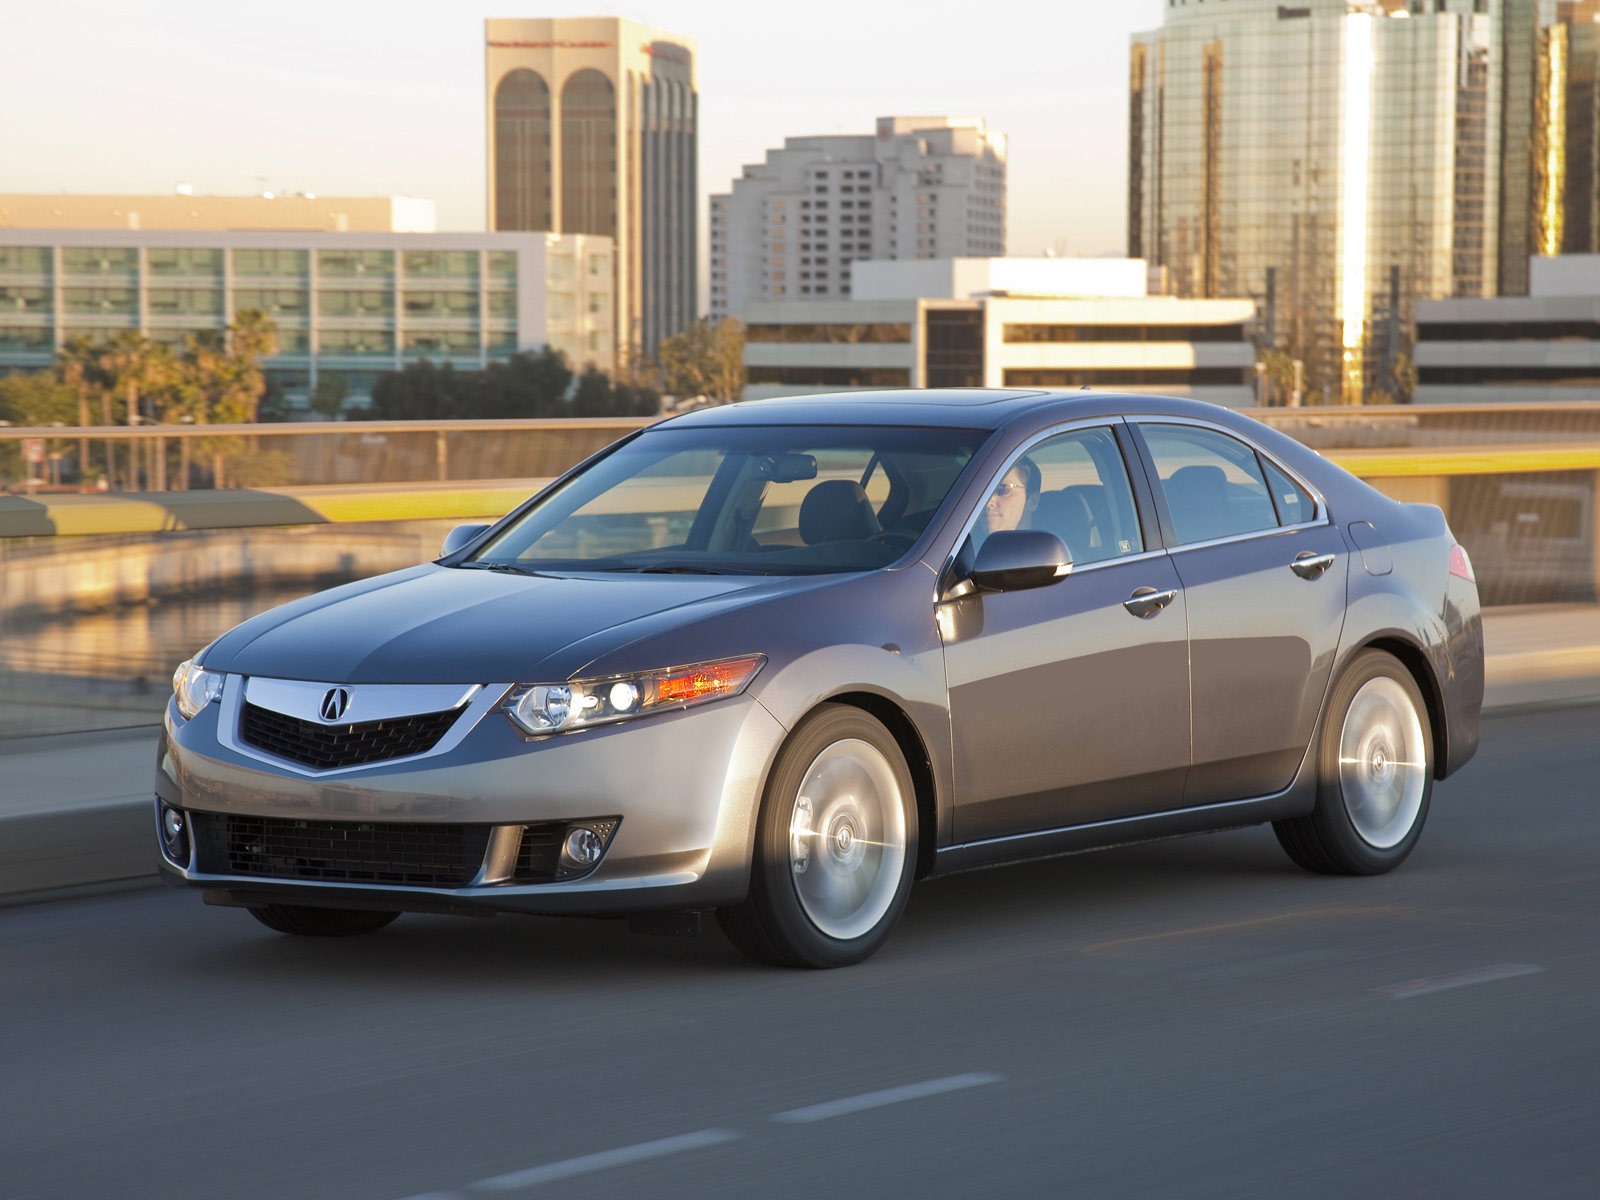 sedan news quarter received when debuted stickshift based the market compact for u was on to accord well acura farewell motion tsx s front three honda sale a sport it luxury european by in